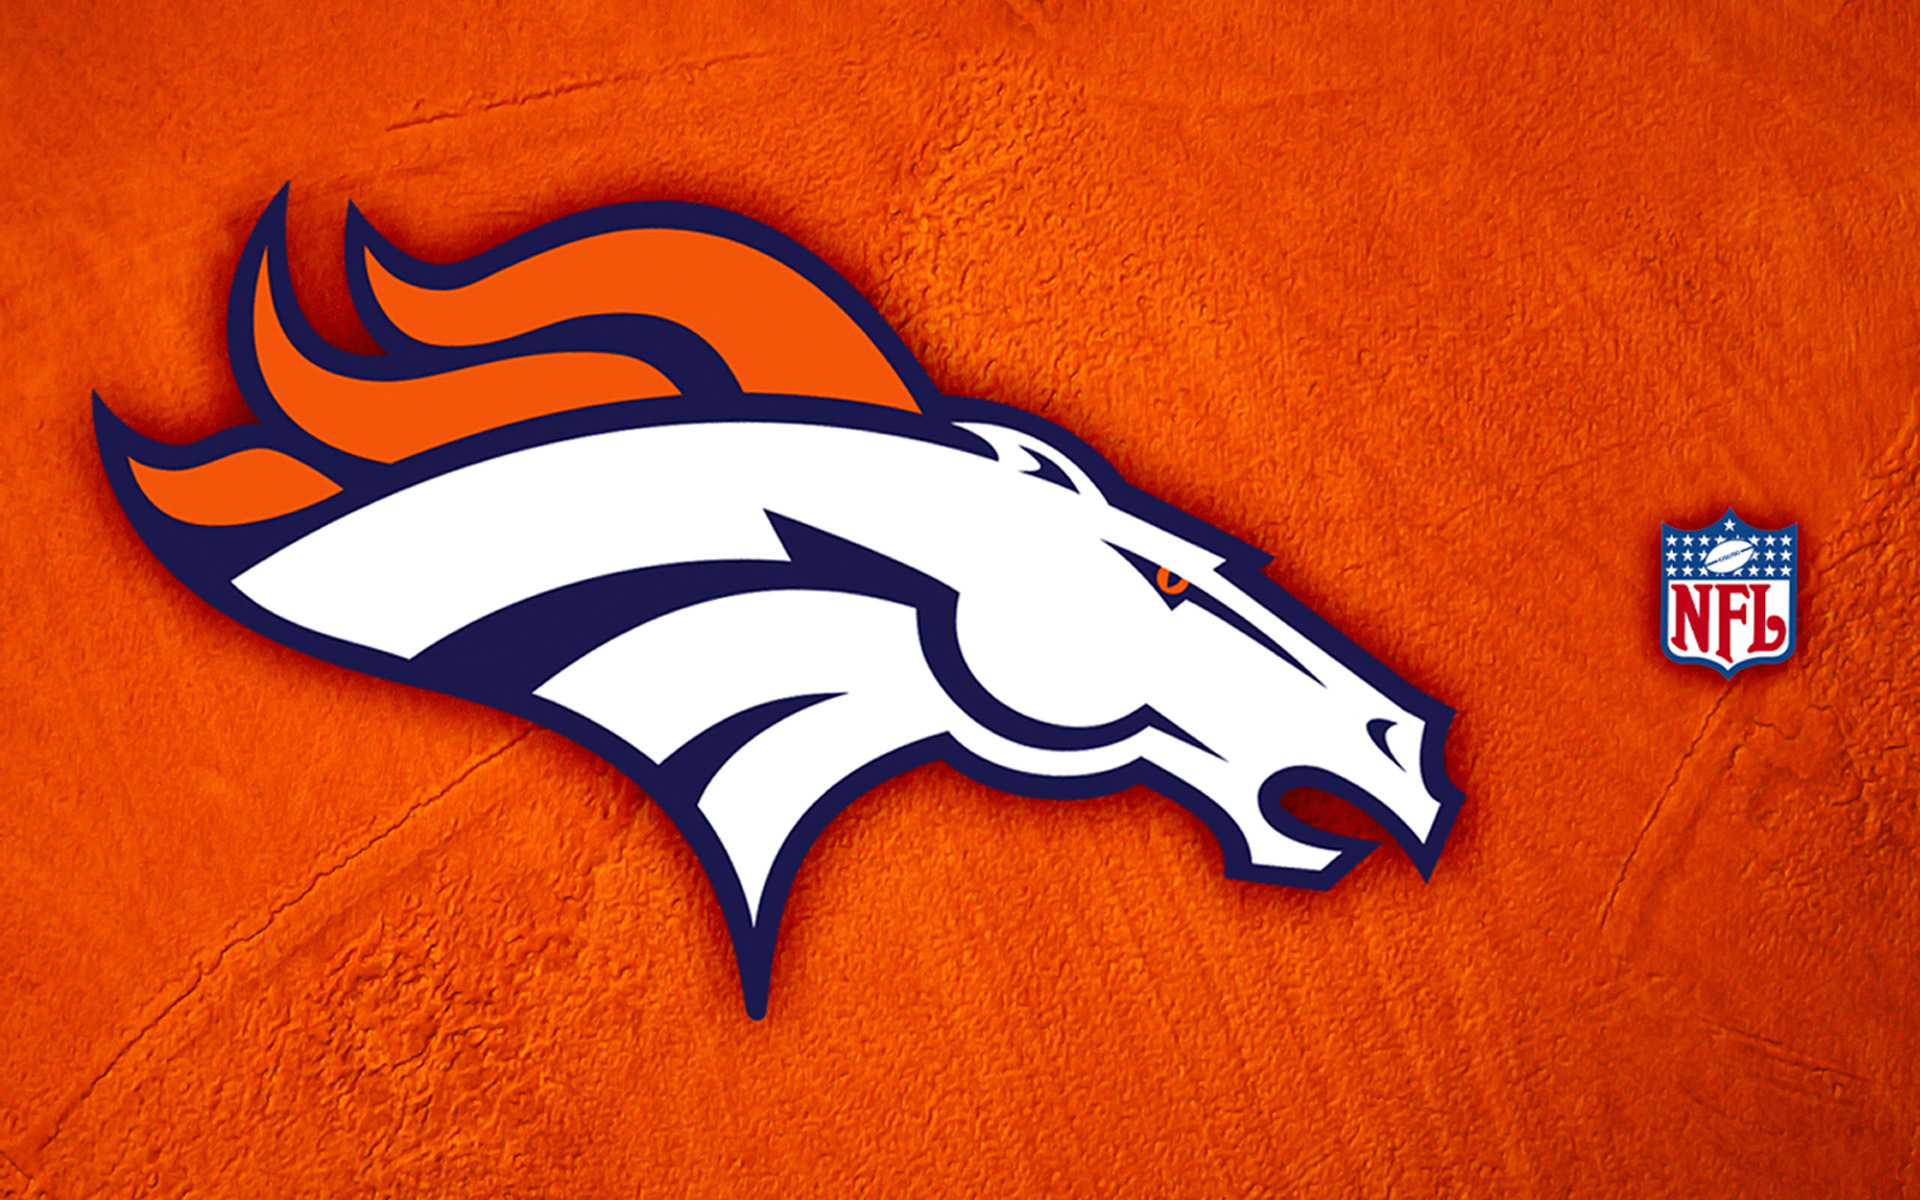 Broncos Wallpaper1920 X 1200 submited images Pic2Fly 1920x1200